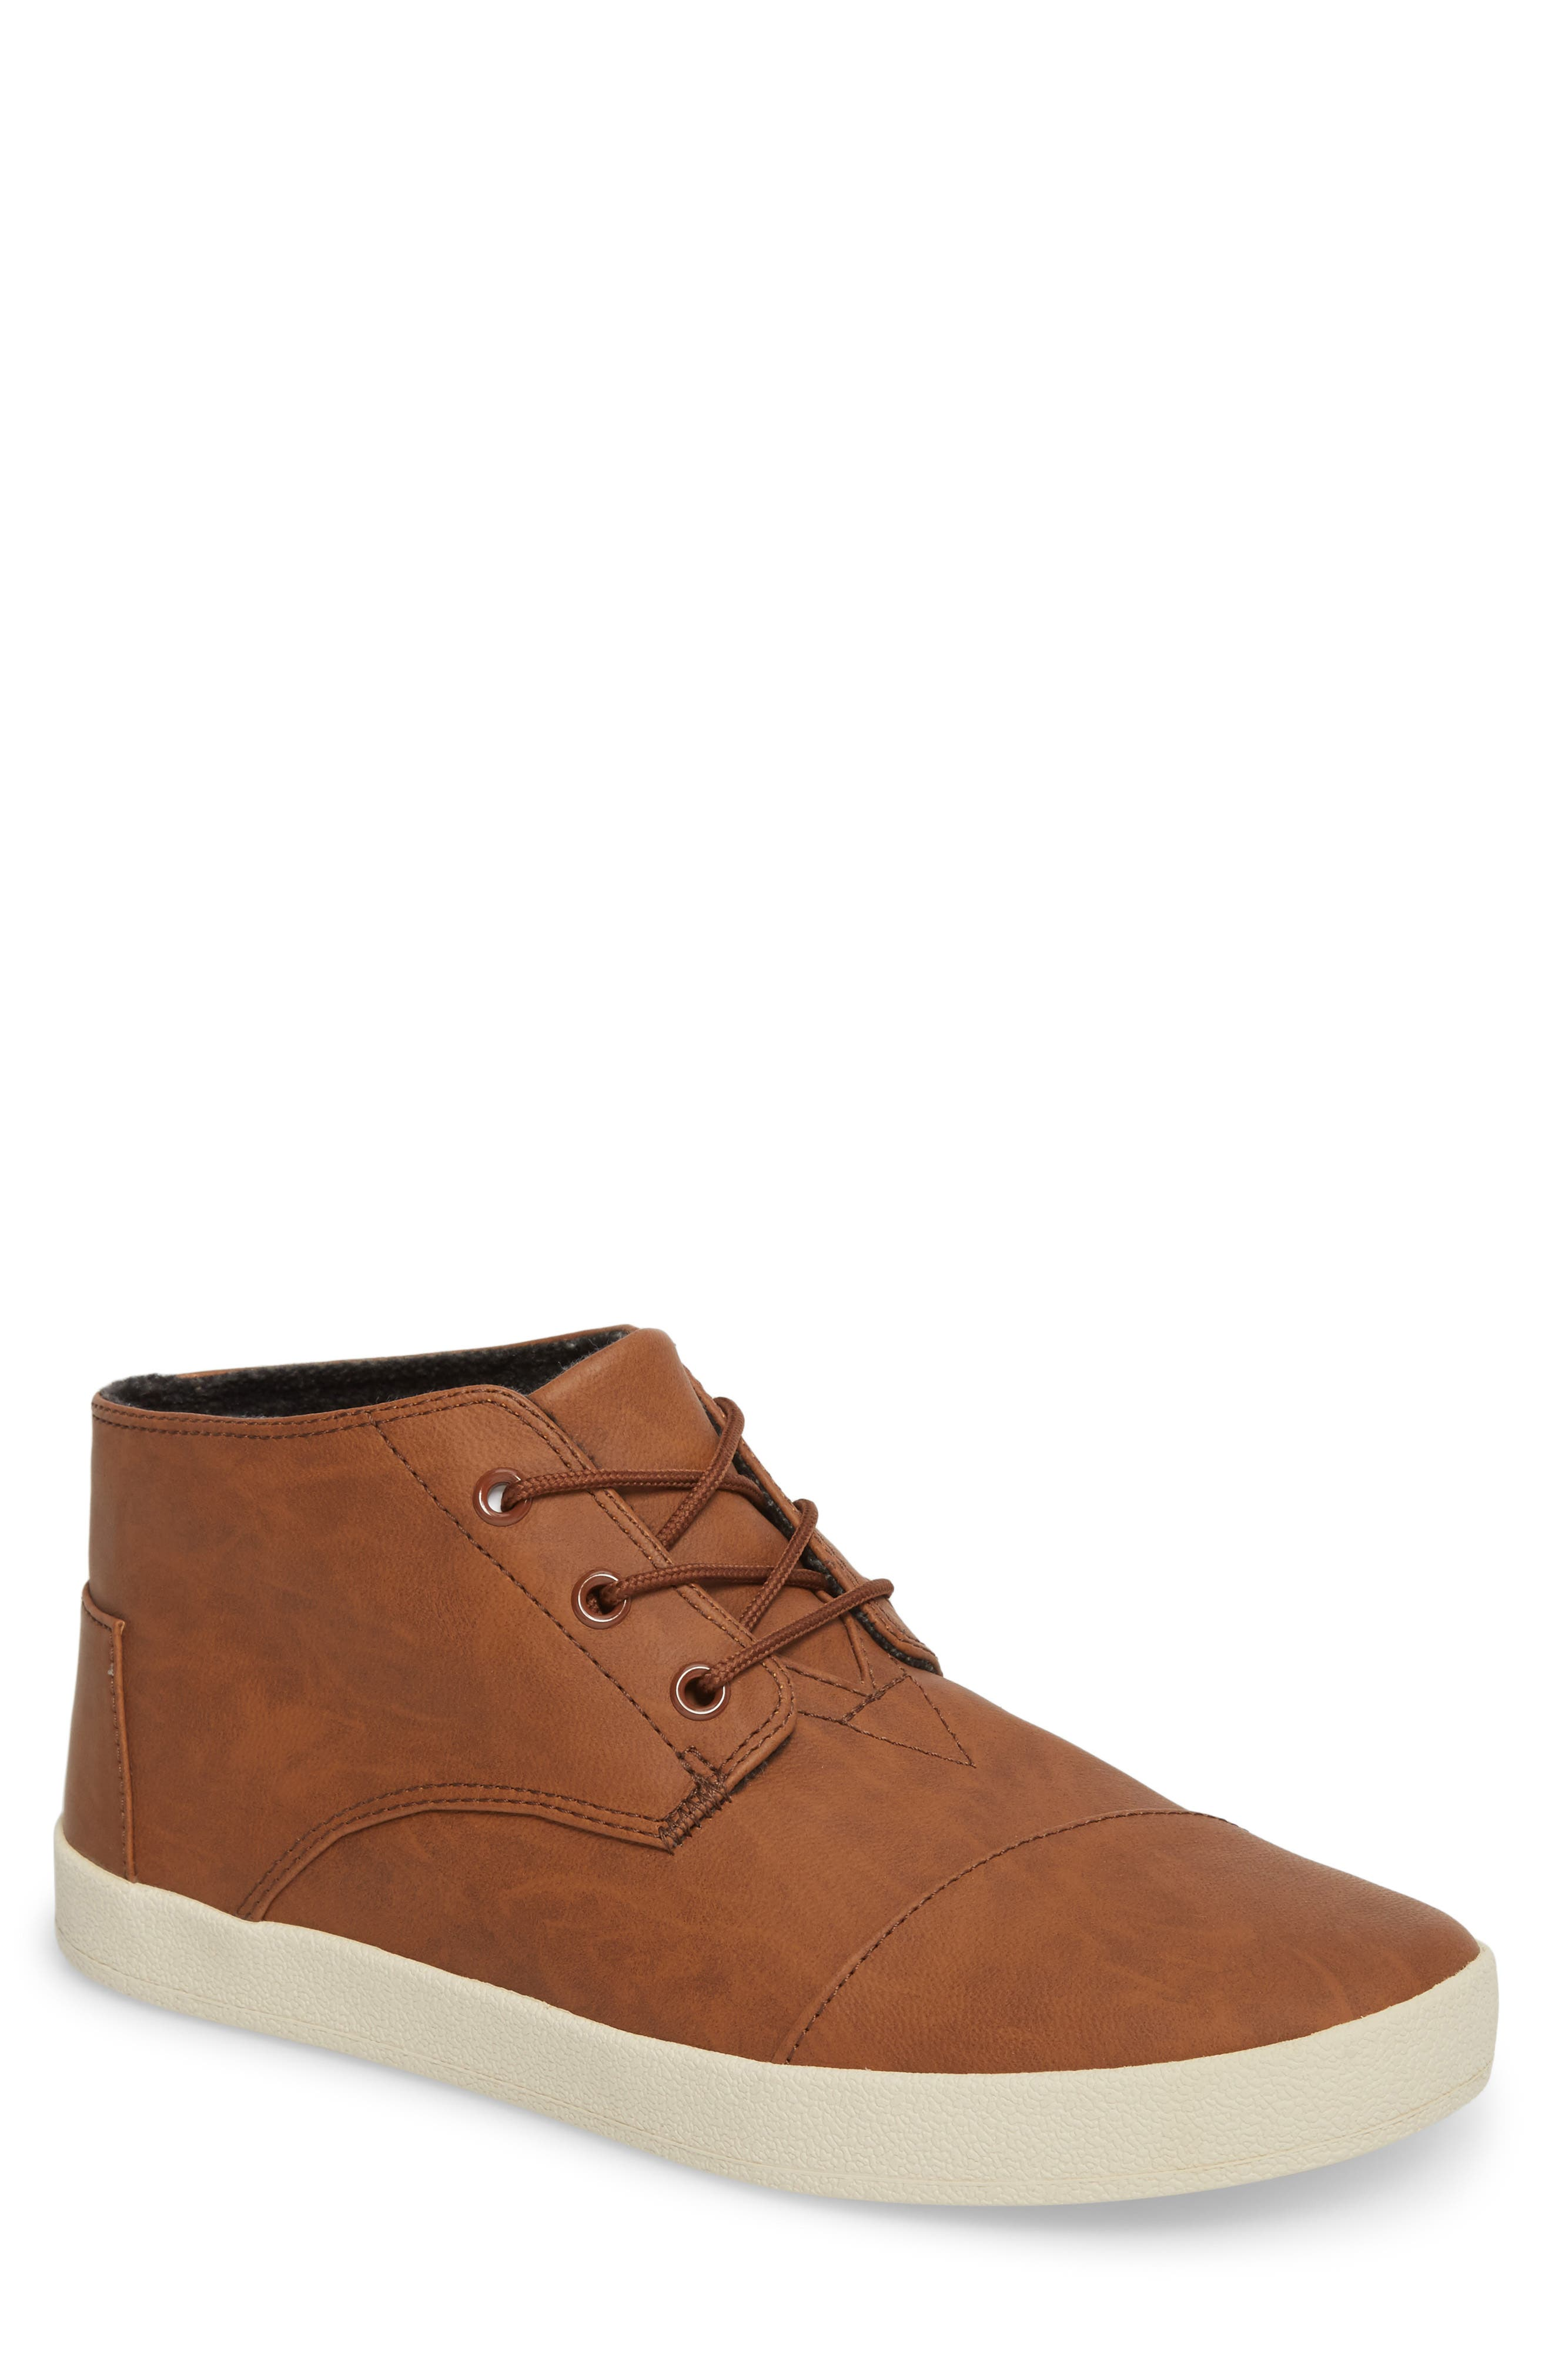 Paseo Mid Sneaker,                         Main,                         color, 200